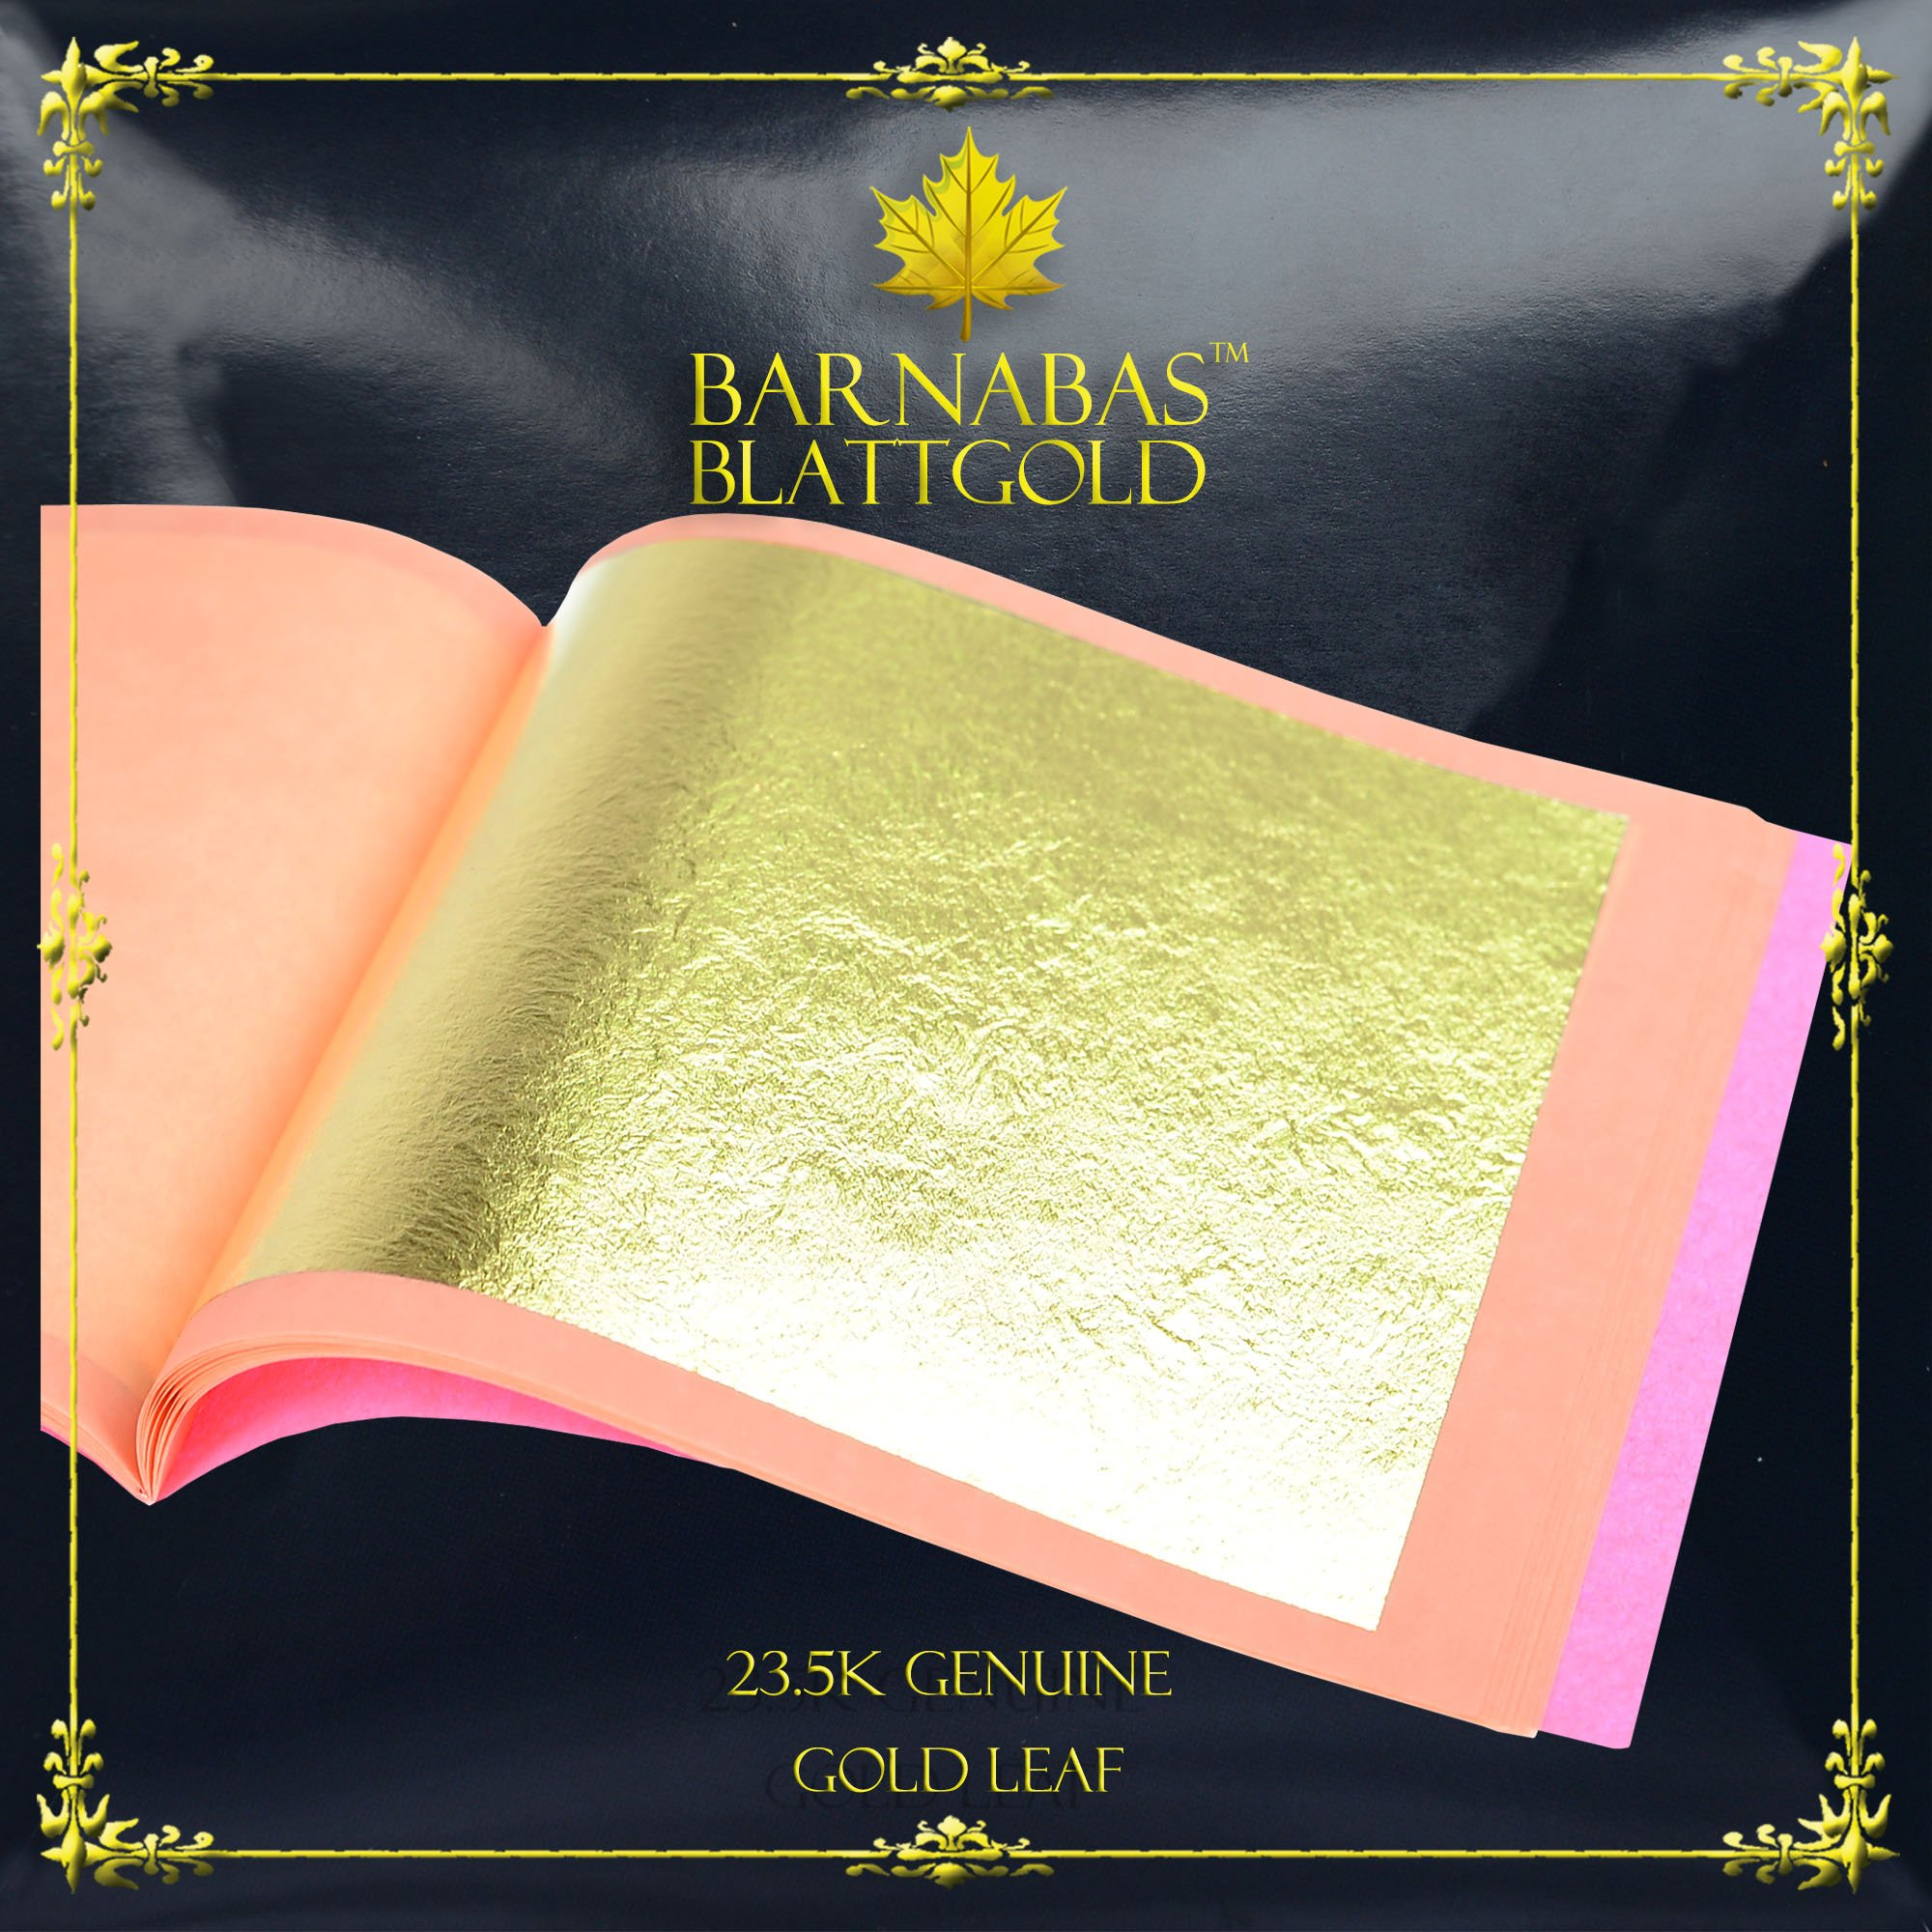 Genuine Gold Leaf Sheets 23.5k - by Barnabas Blattgold - 3.1 inches - 25 Sheets Booklet - Loose Leaf